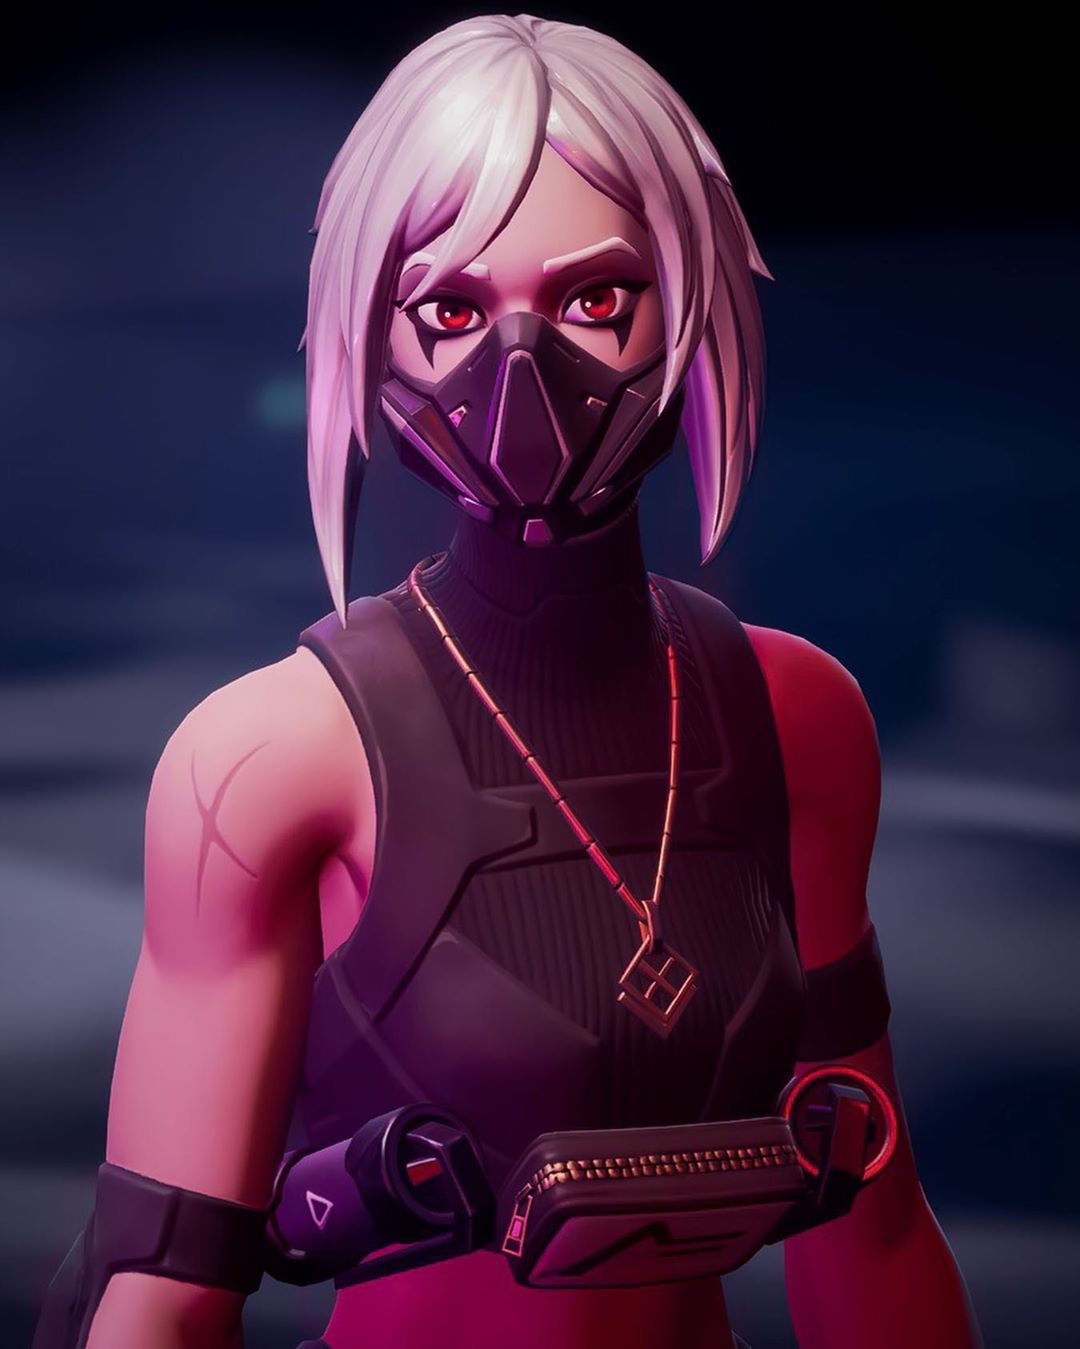 Miniature Best Of Fortnite : miniature, fortnite, Fortnite, Ideas, Fortnite,, Gaming, Wallpapers,, Games